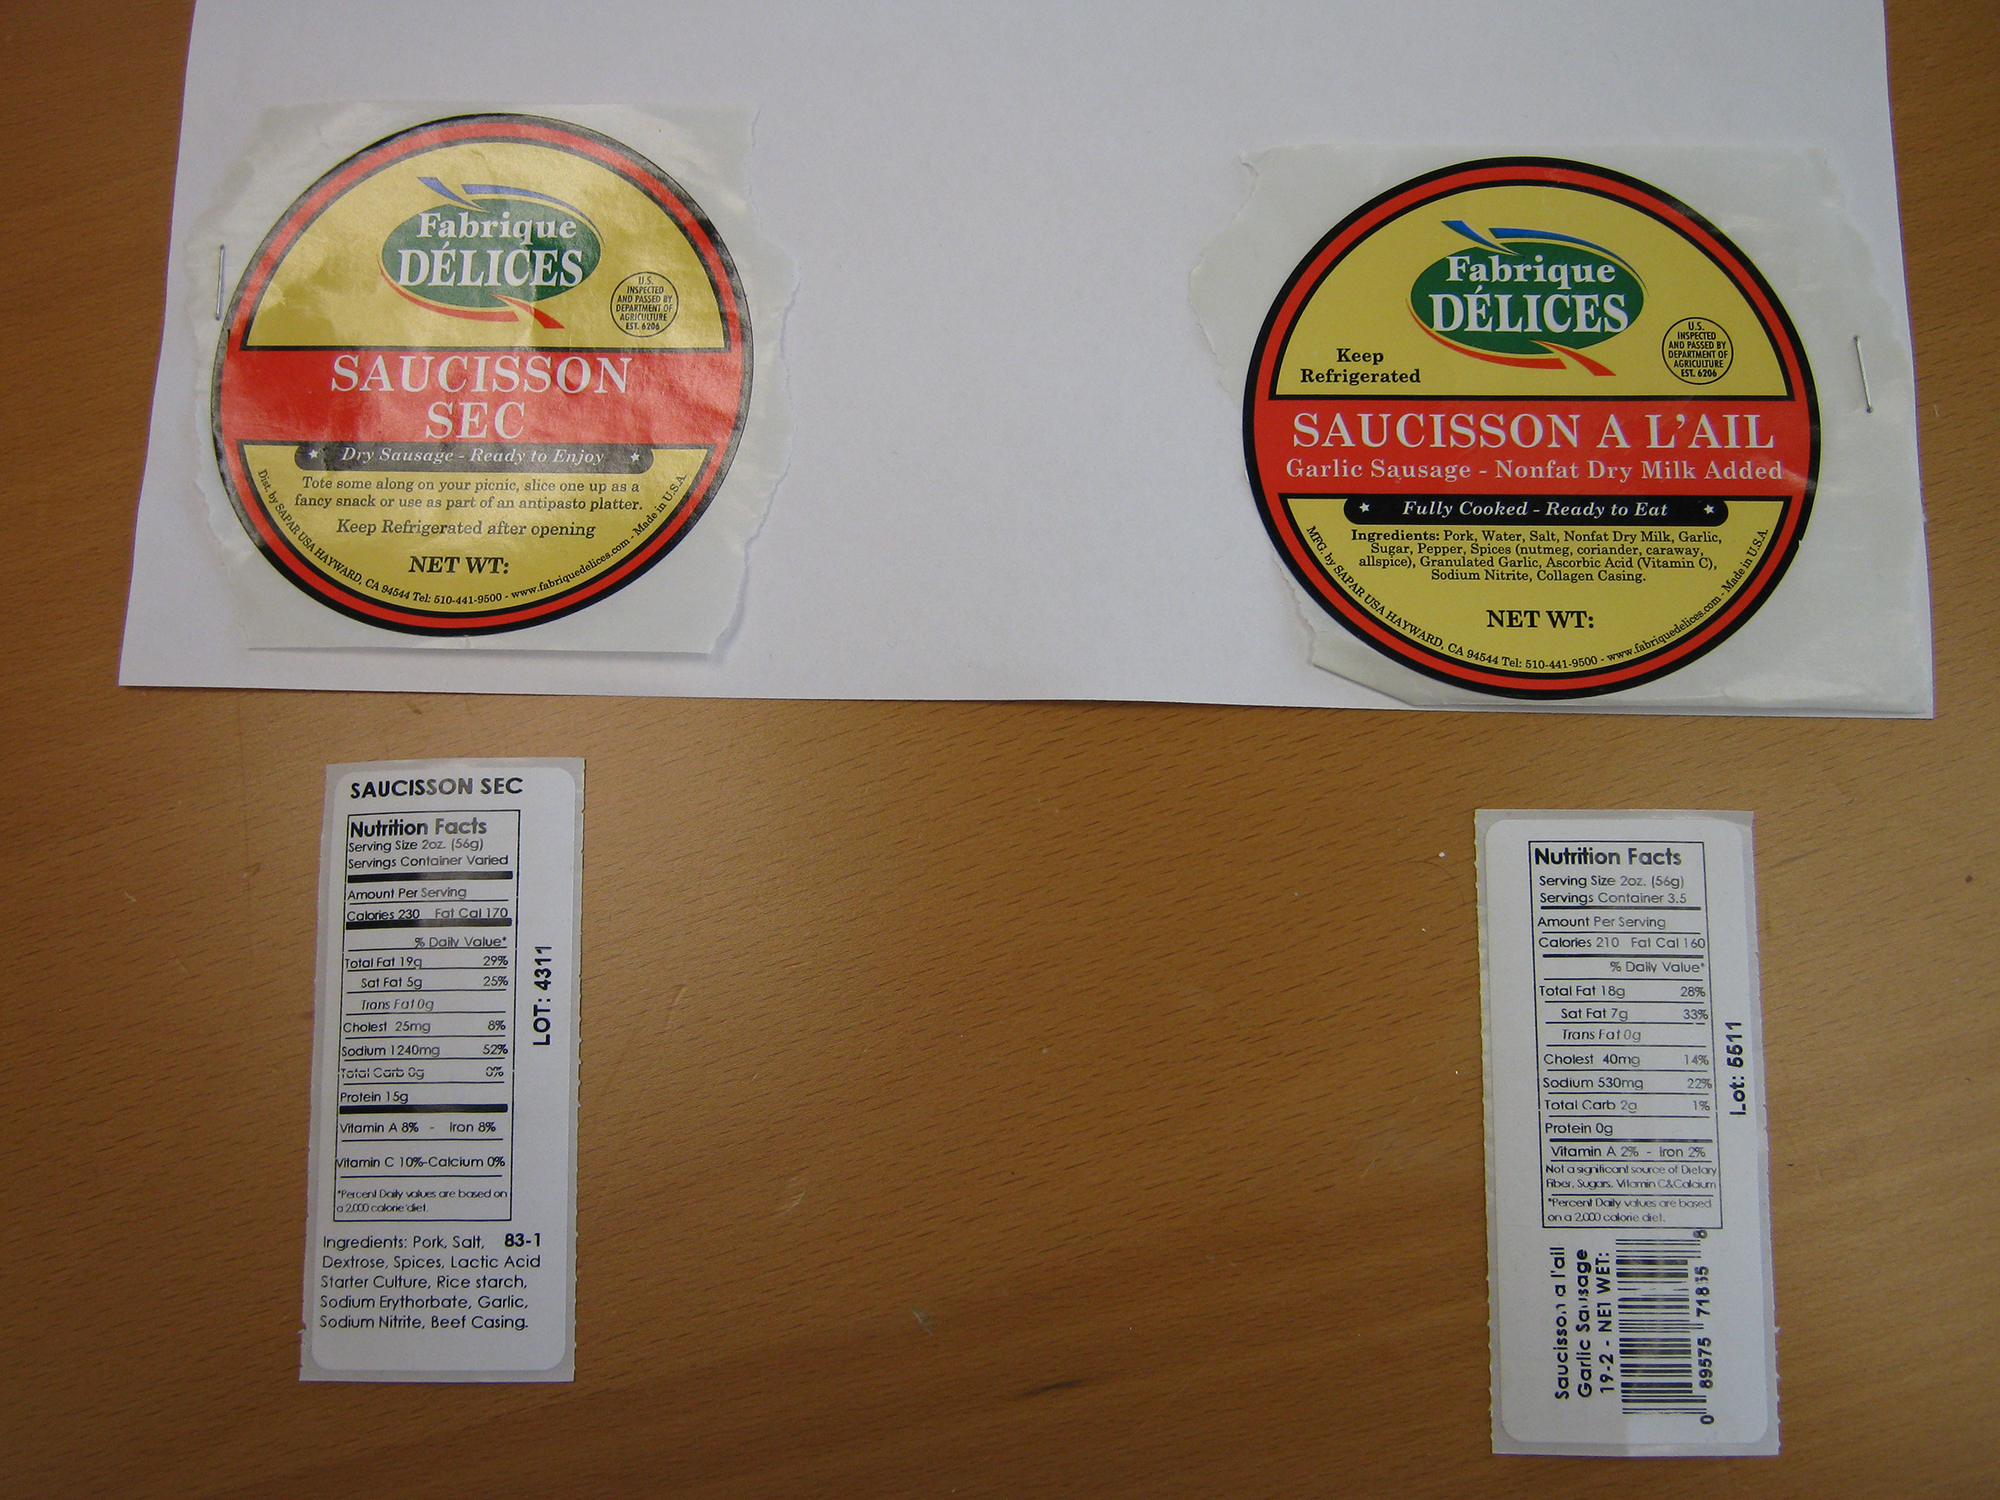 California Firm Recalls Sausage Products Due To Misbranding and Undeclared Allergen (Milk)